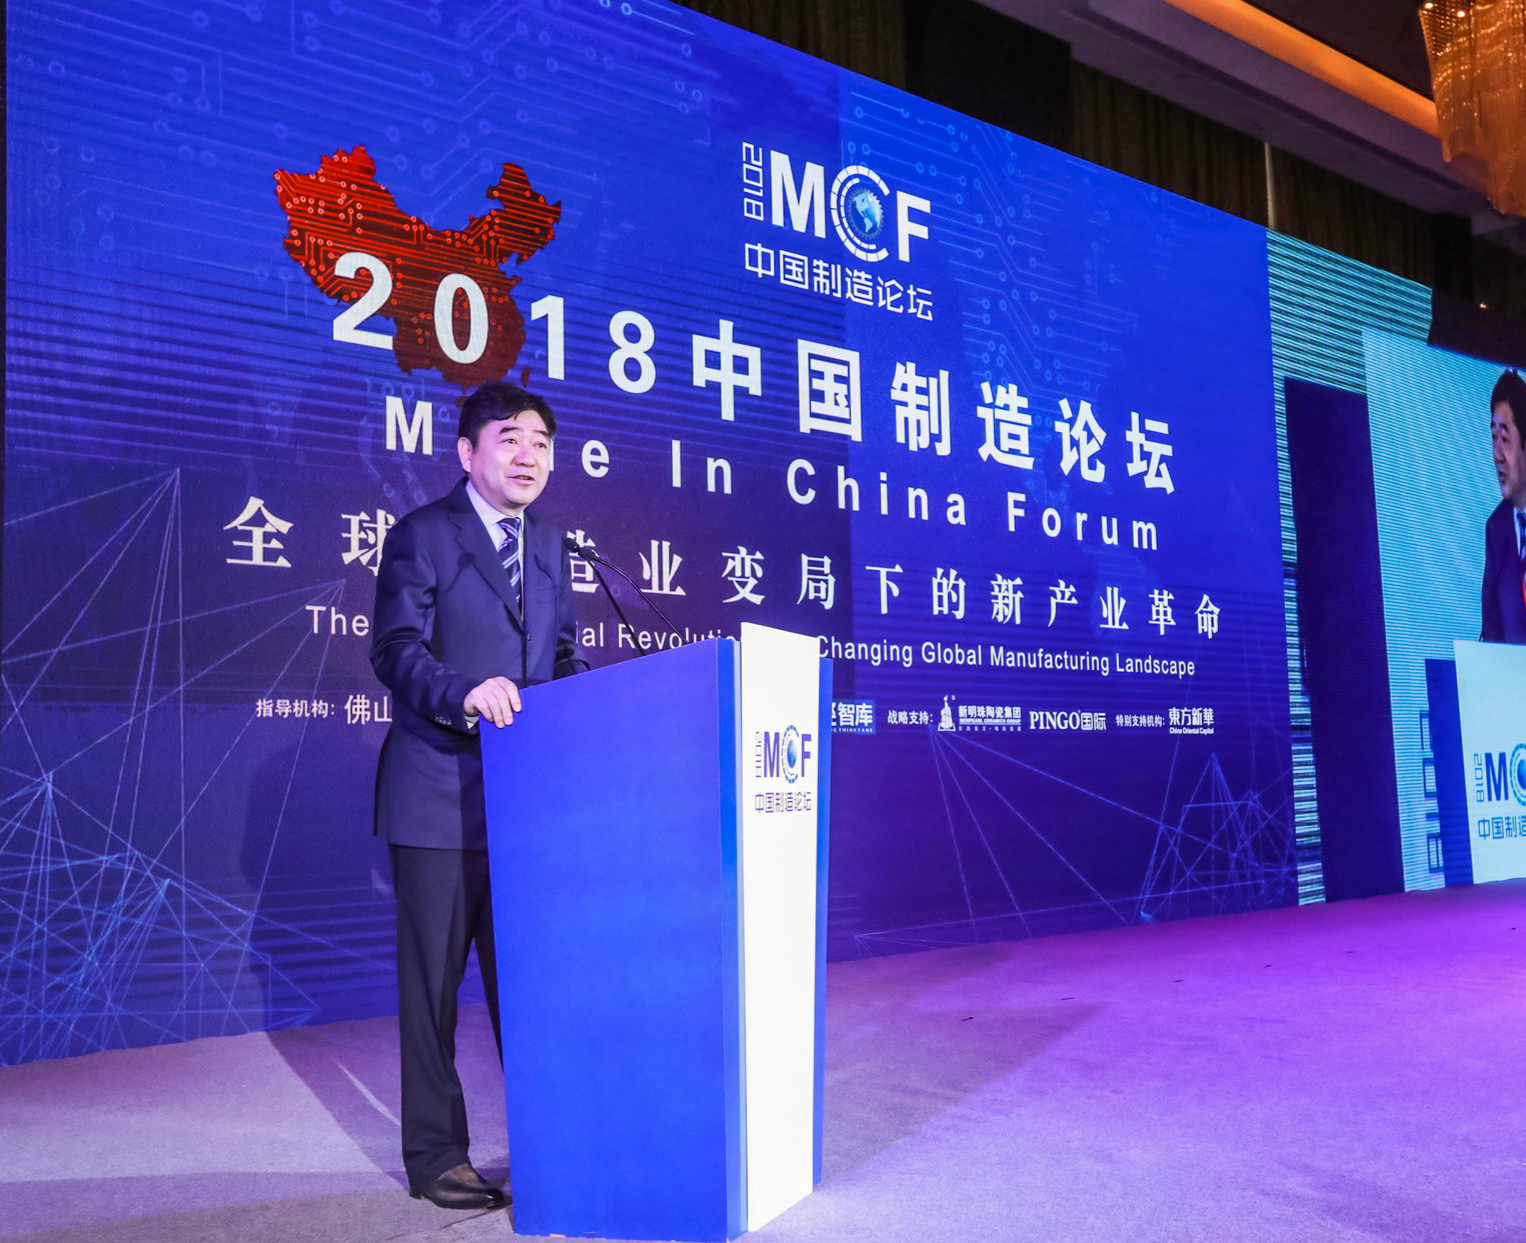 Zheng Yuewen, vice chairman of the All-China Federation of Industry and Commerce, makes a keynote speech at the 2018 Made in China Forum held in Foshan, Guangdong Province on Jan. 14. [Photo provided to China.org.cn]